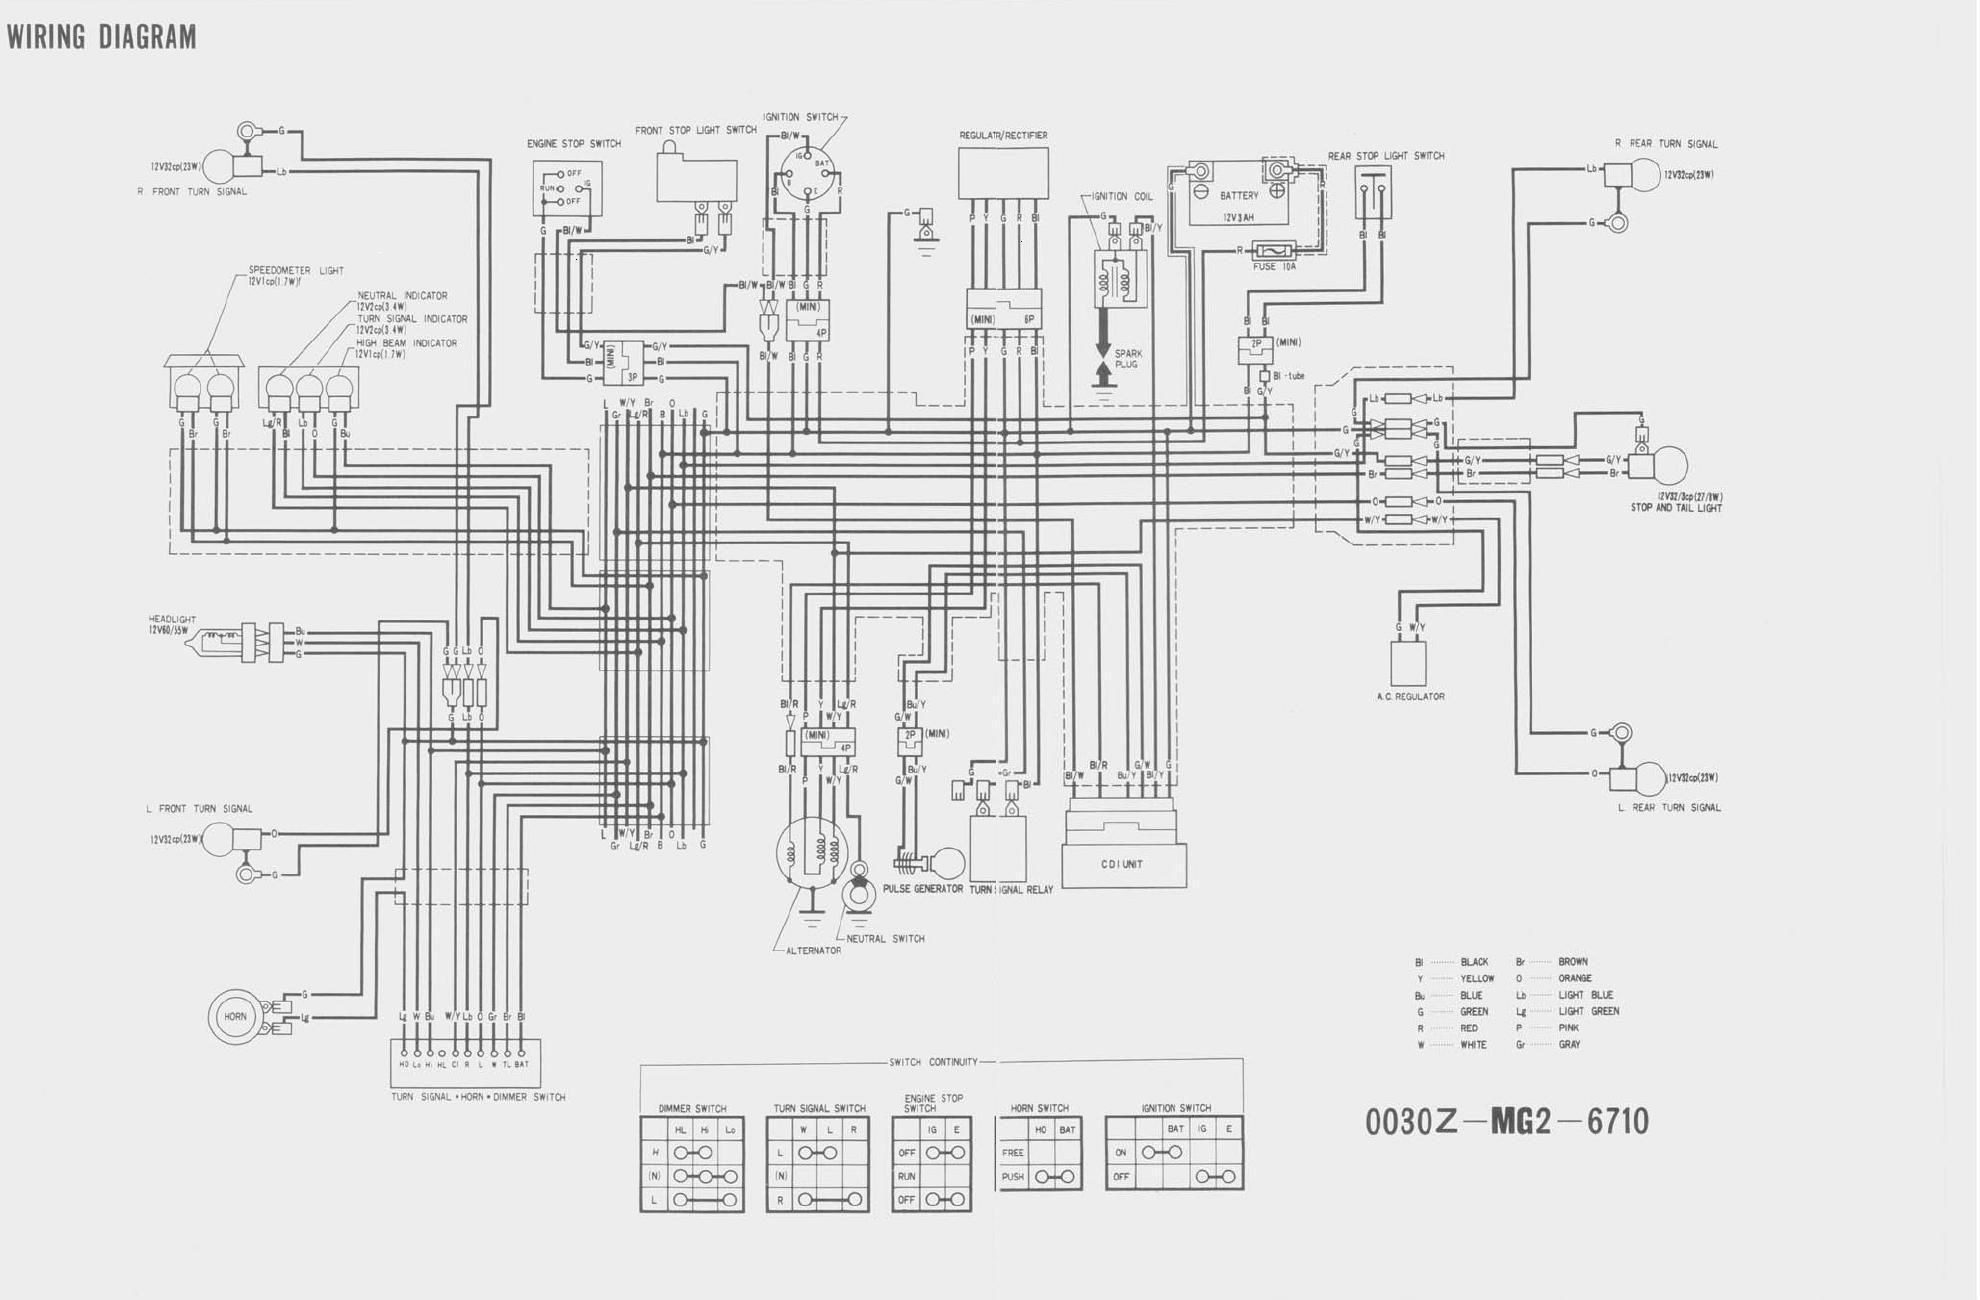 xr600 wiring diagram viper 5901 remote start pin by mariaan weweje on xl600 pinterest motorcycle